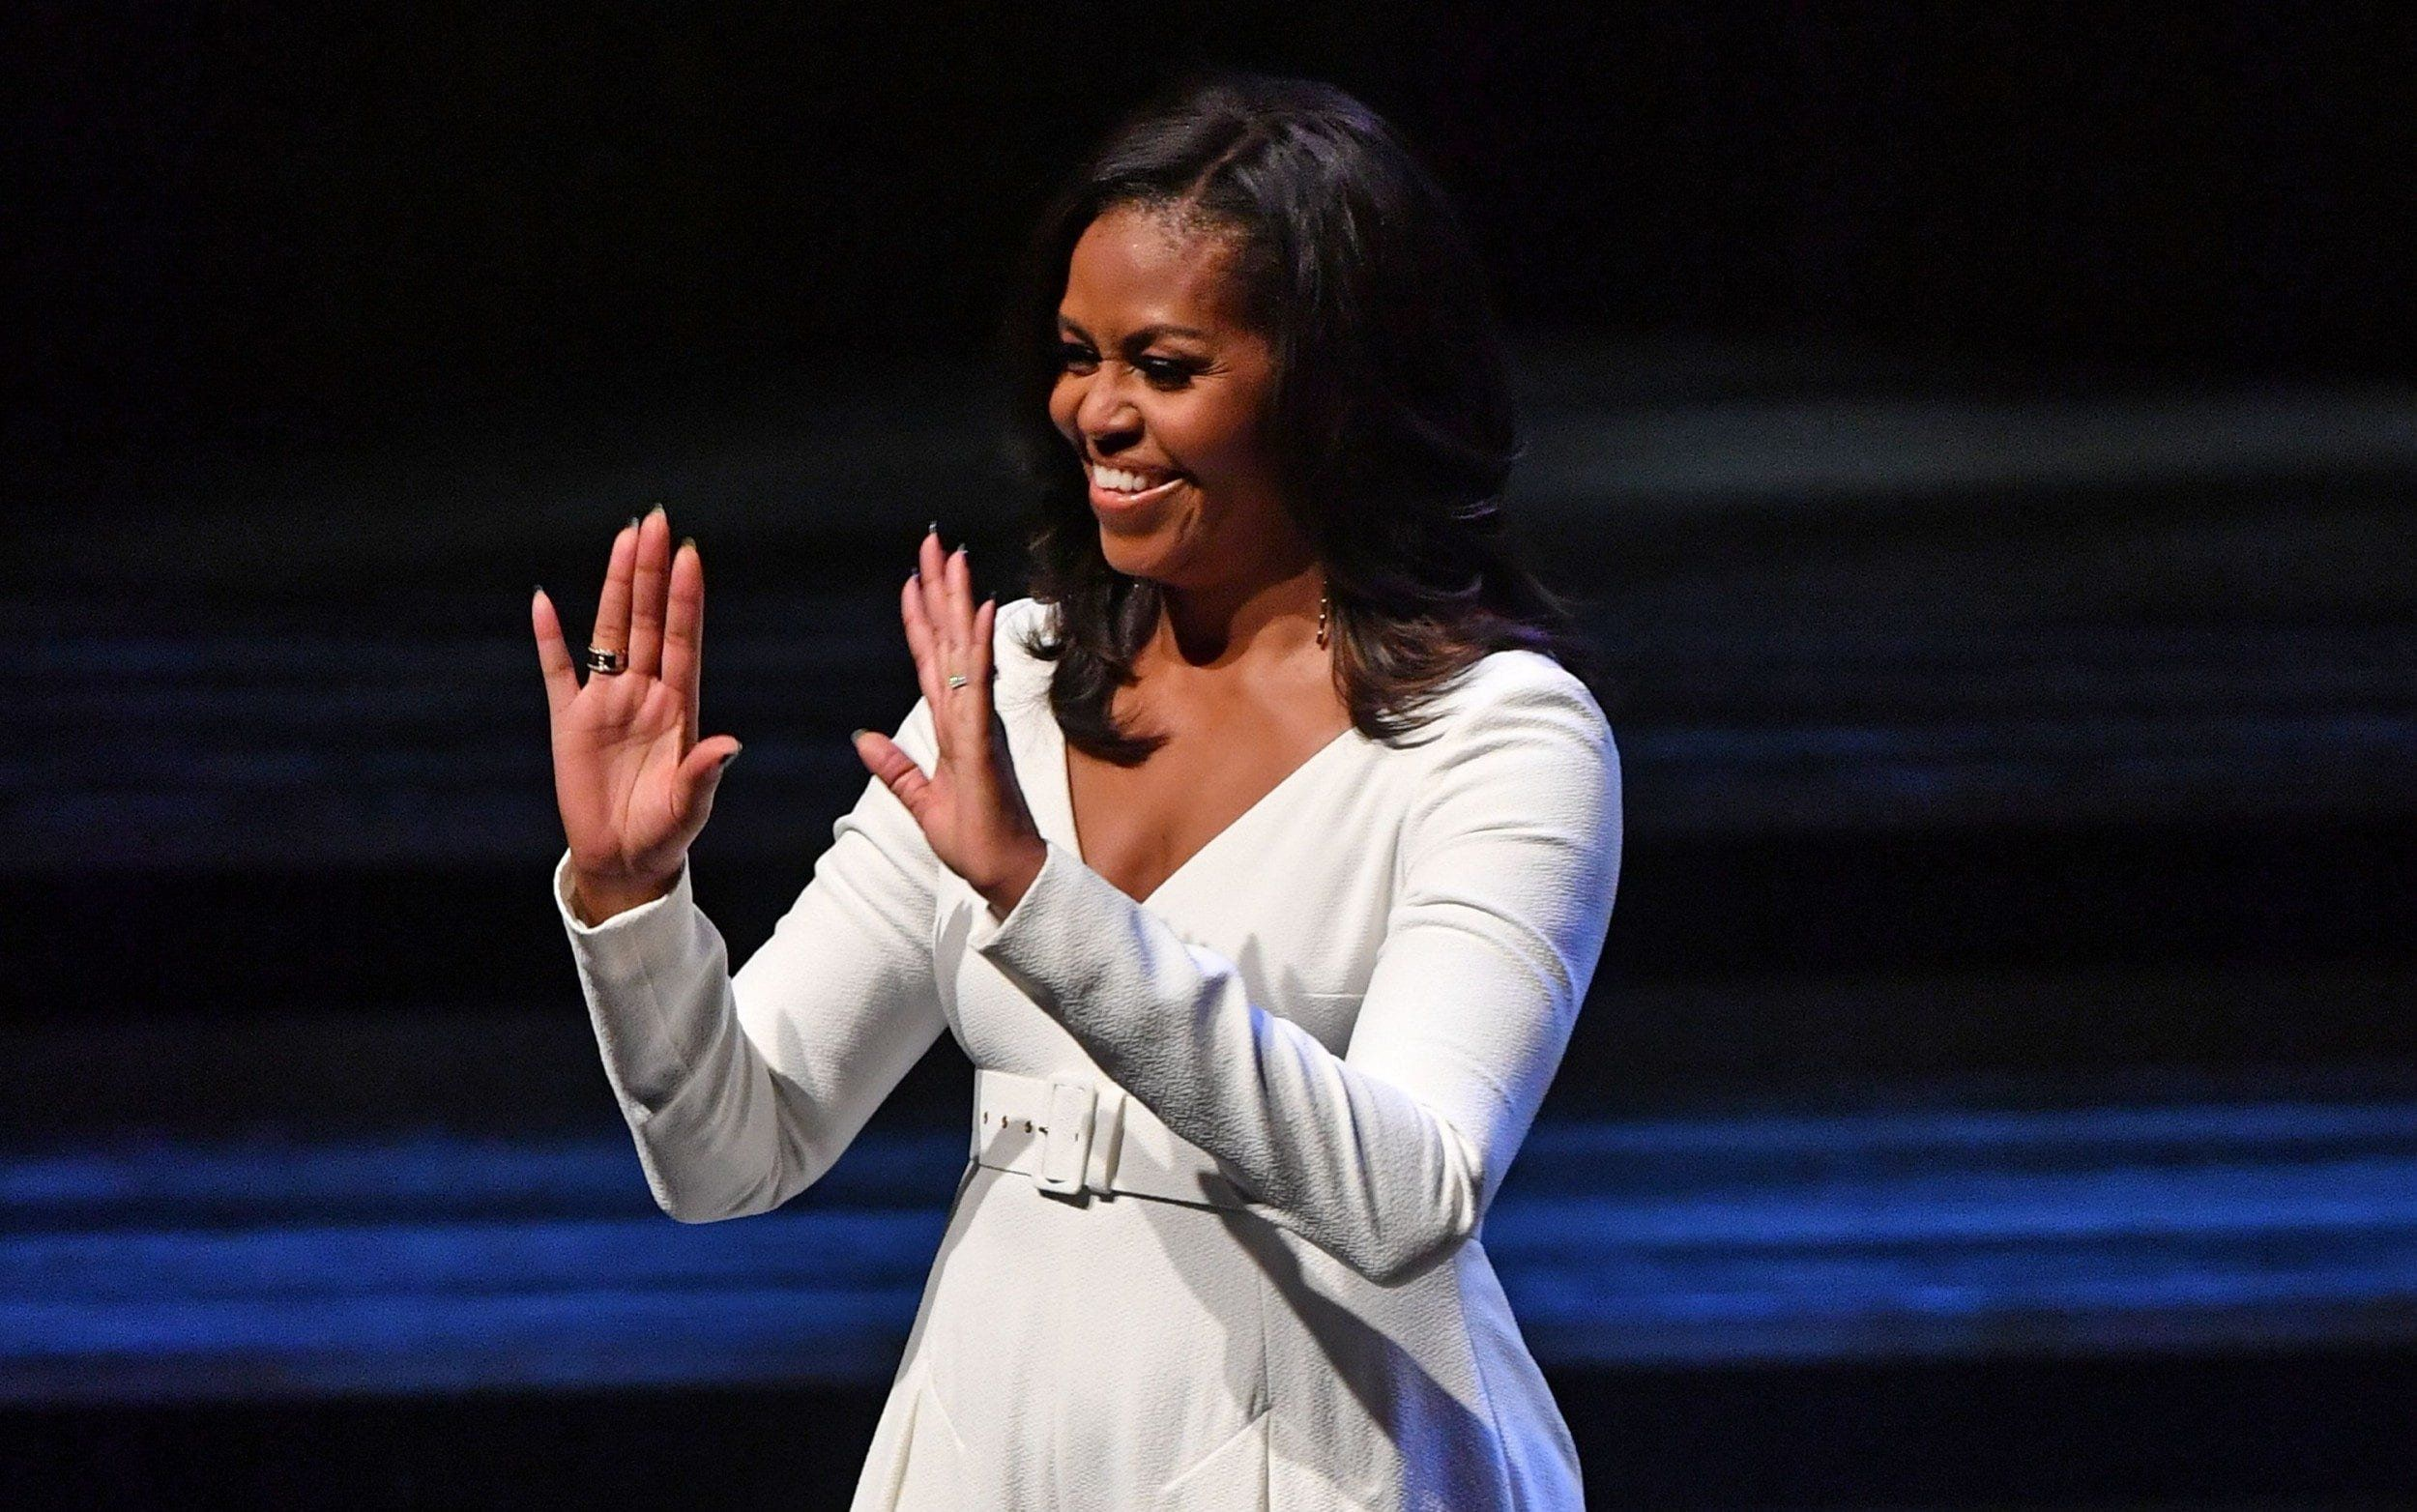 Michelle Obama Tells Young Women: 'World Leaders Don't Have Better Ideas Than